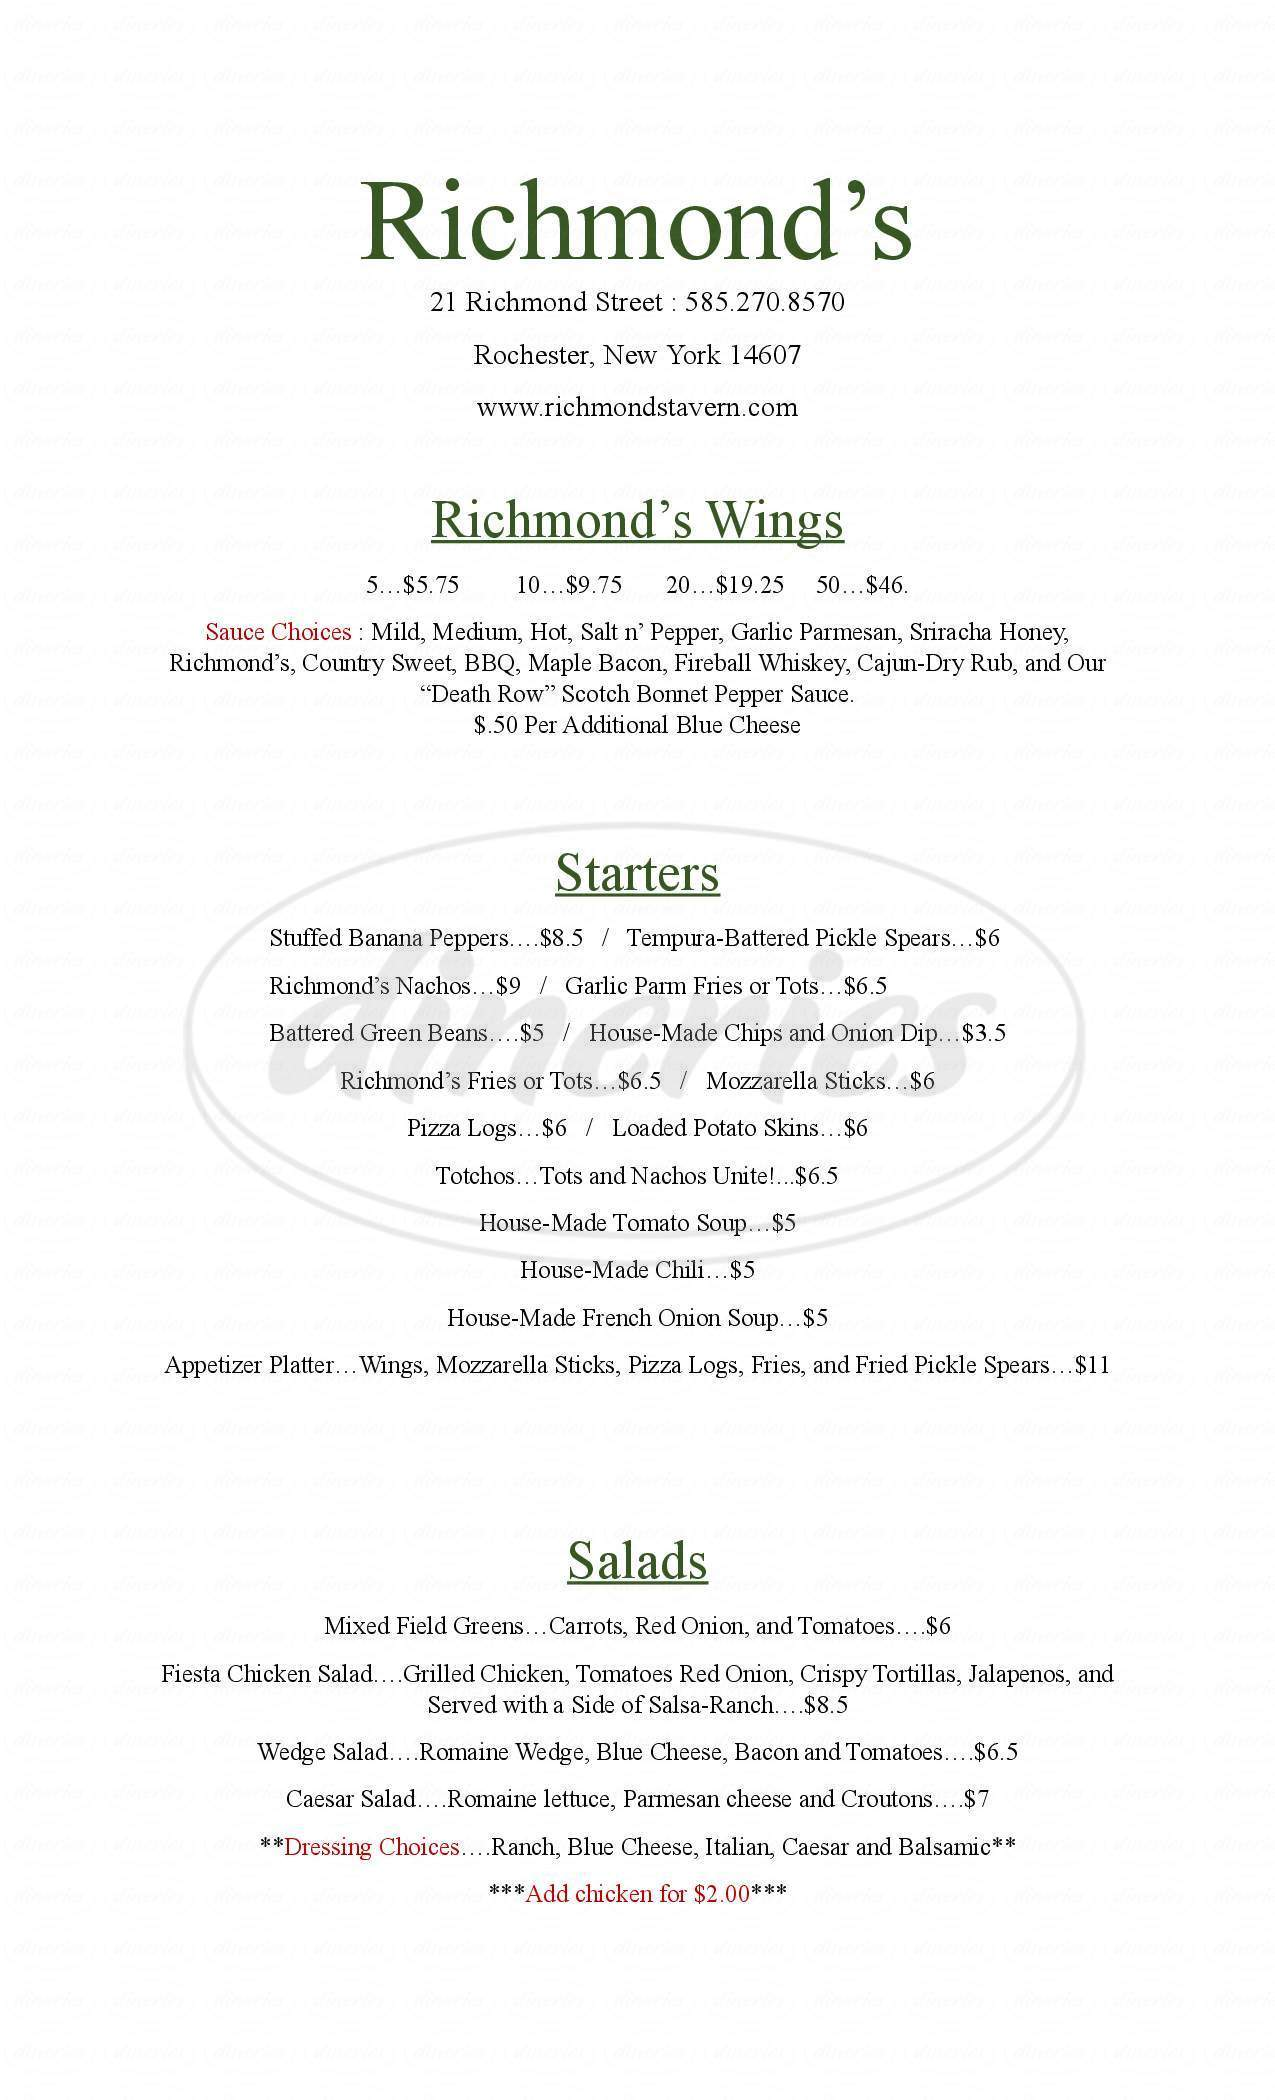 menu for Richmond's